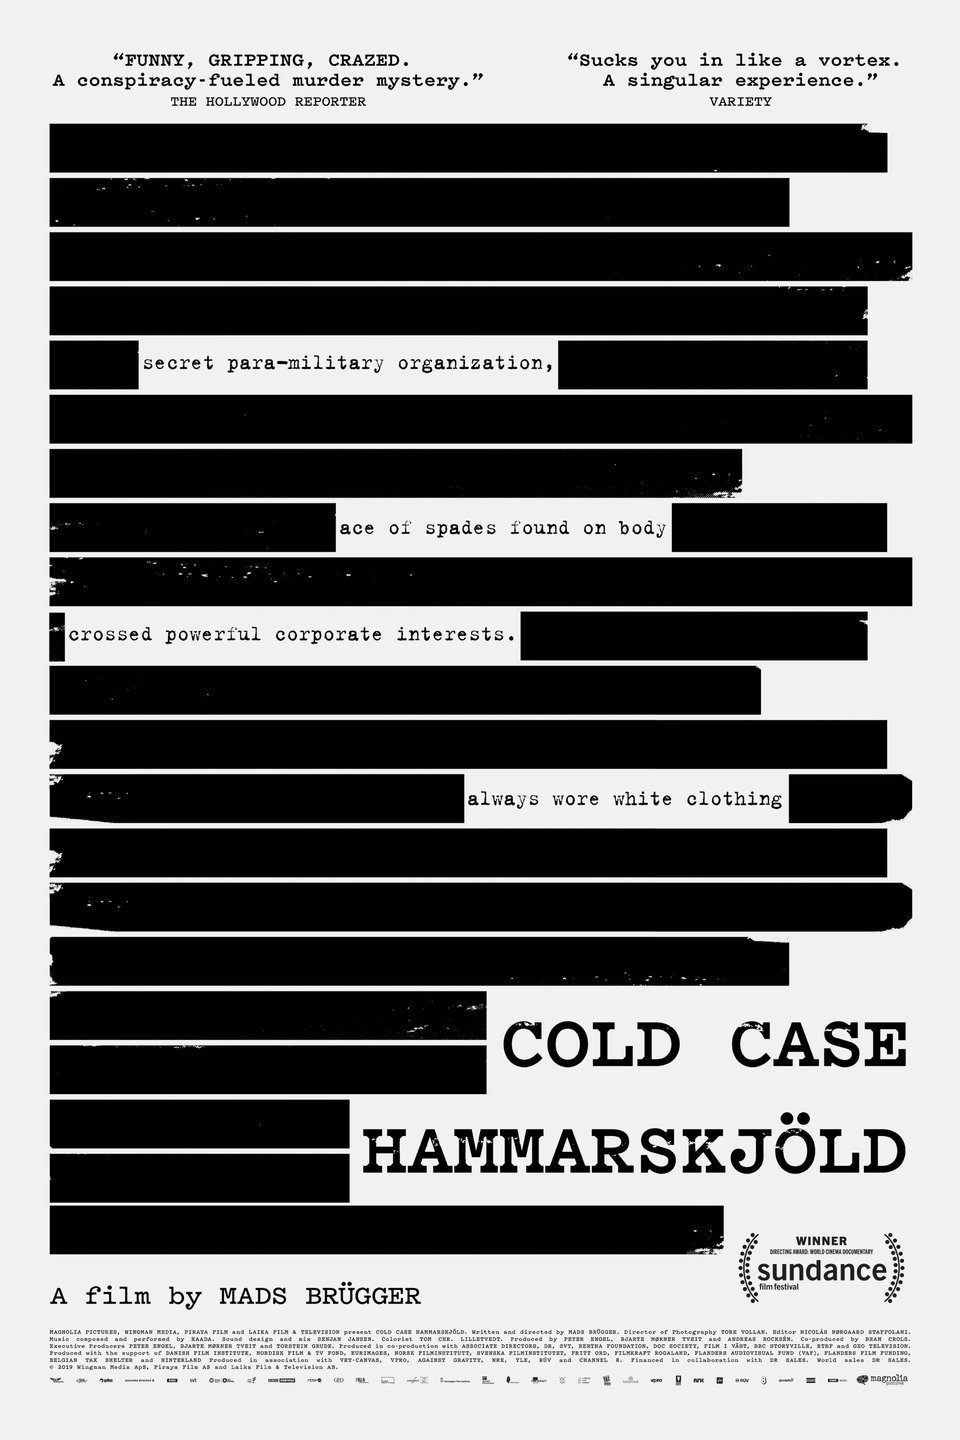 Cold Case Hammarskjold (2019) - Directed by: Mads BruggerStarring: Mads Brugger, Goran BjorkdahlRated: RRunning Time: 2h 8mTMM Score: 5 StarsSTRENGTHS: Mystery, Subversion, Insane Real TwistsWEAKNESSES: Tests Patience